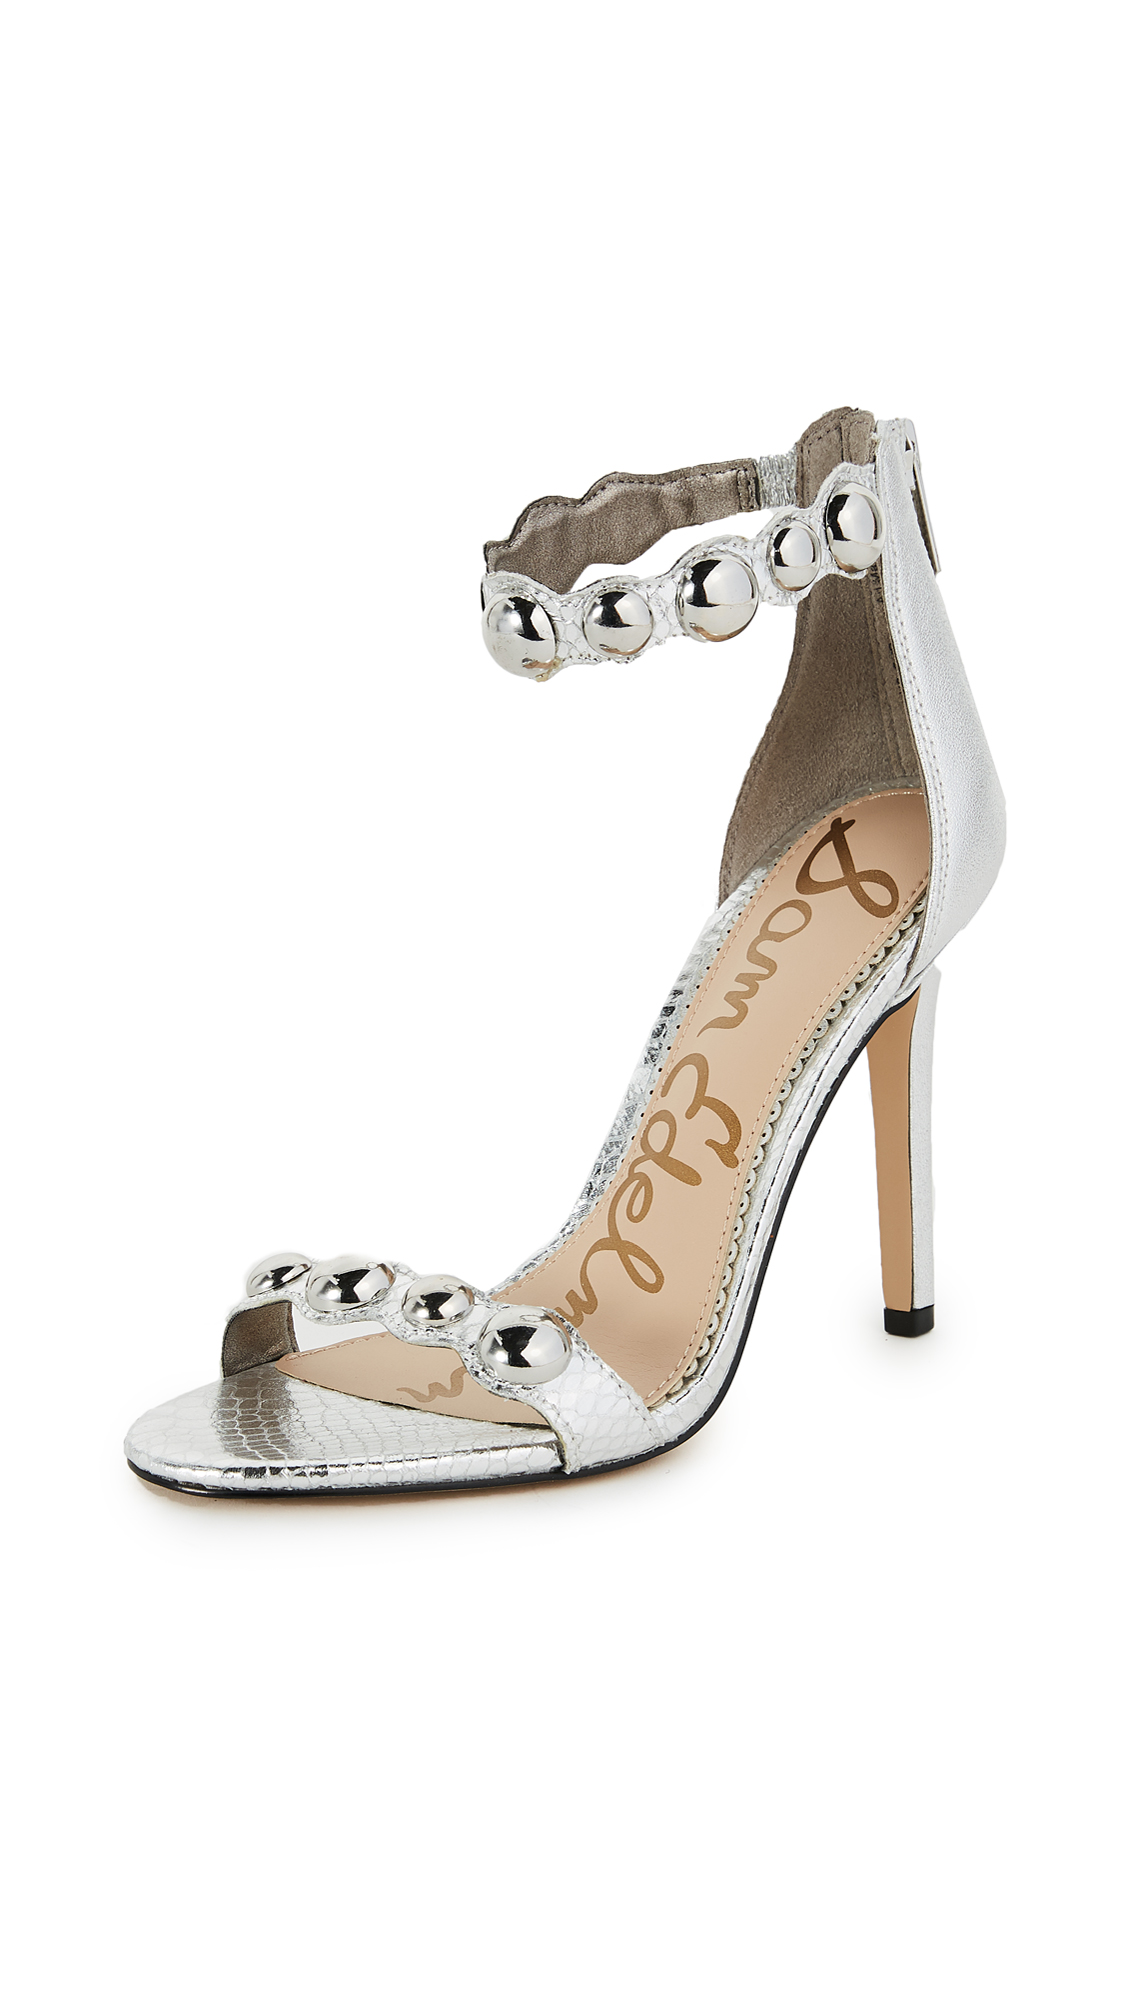 Sam Edelman Addison Sandals